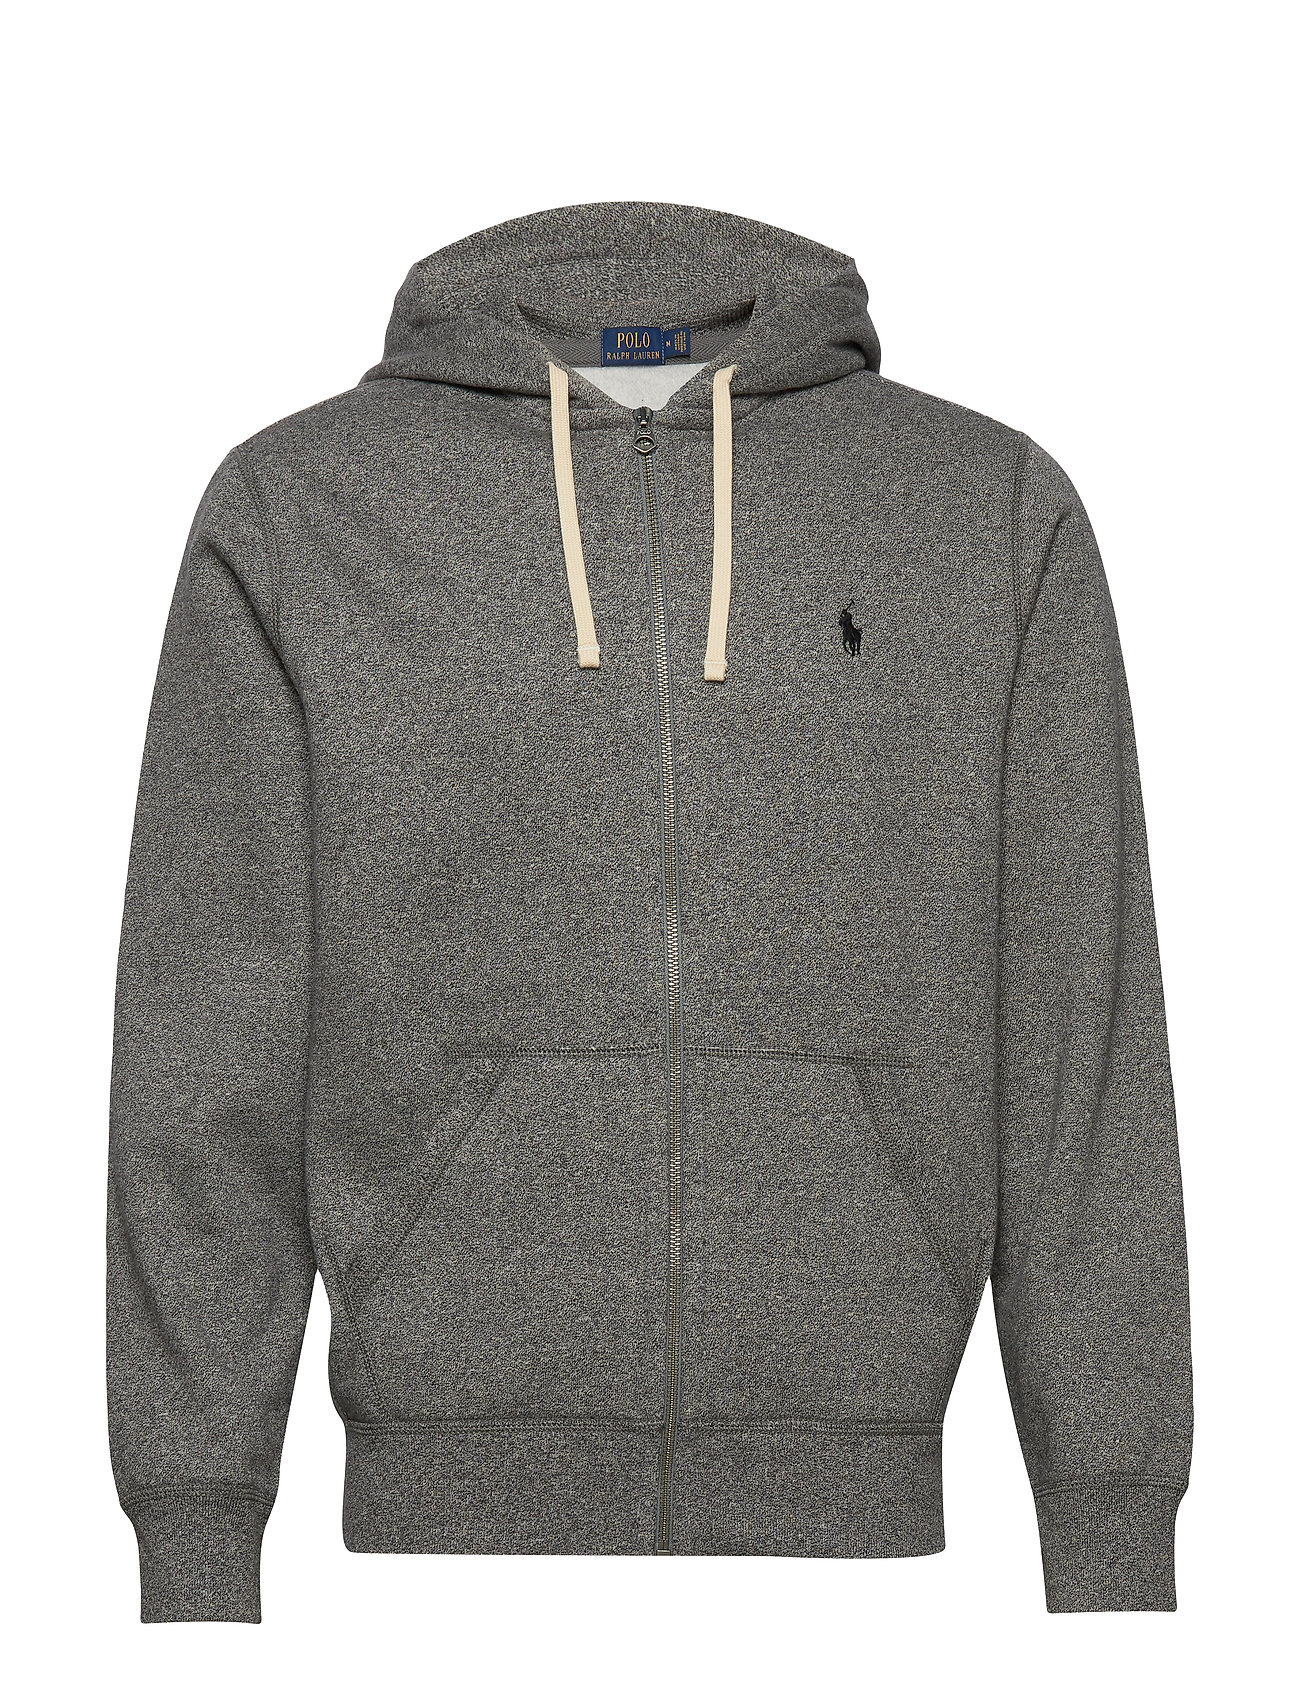 Polo Ralph Lauren Cotton-Blend-Fleece Hoodie - ALASKAN HEATHER